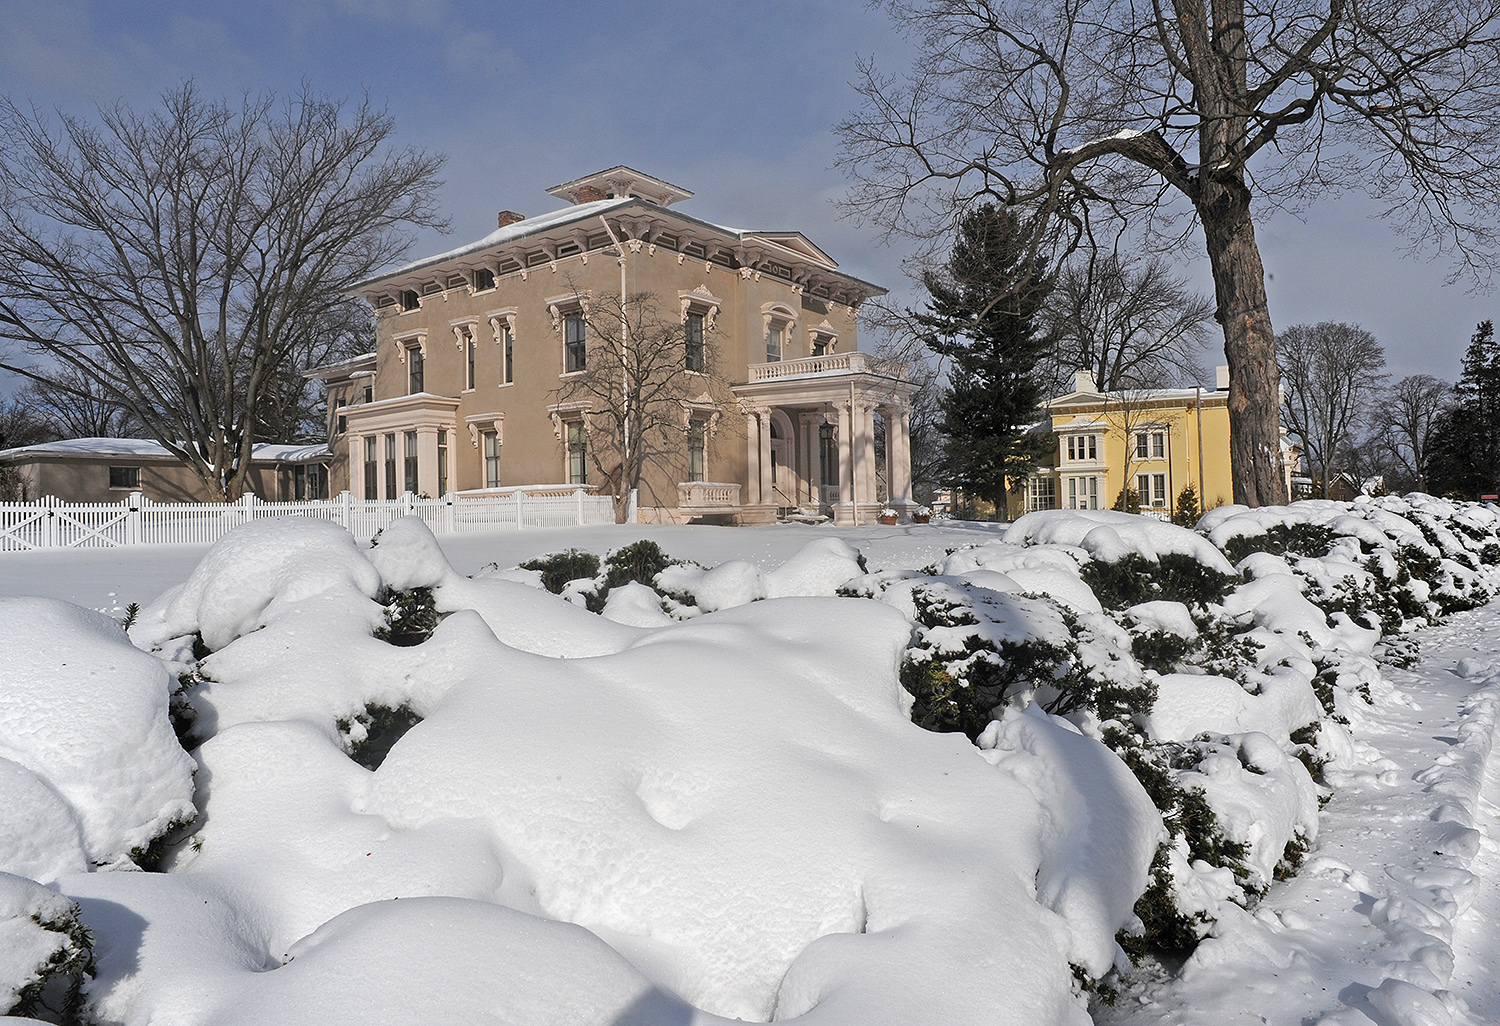 Snowy shrubs frame the President's House and the Anthropology Department.